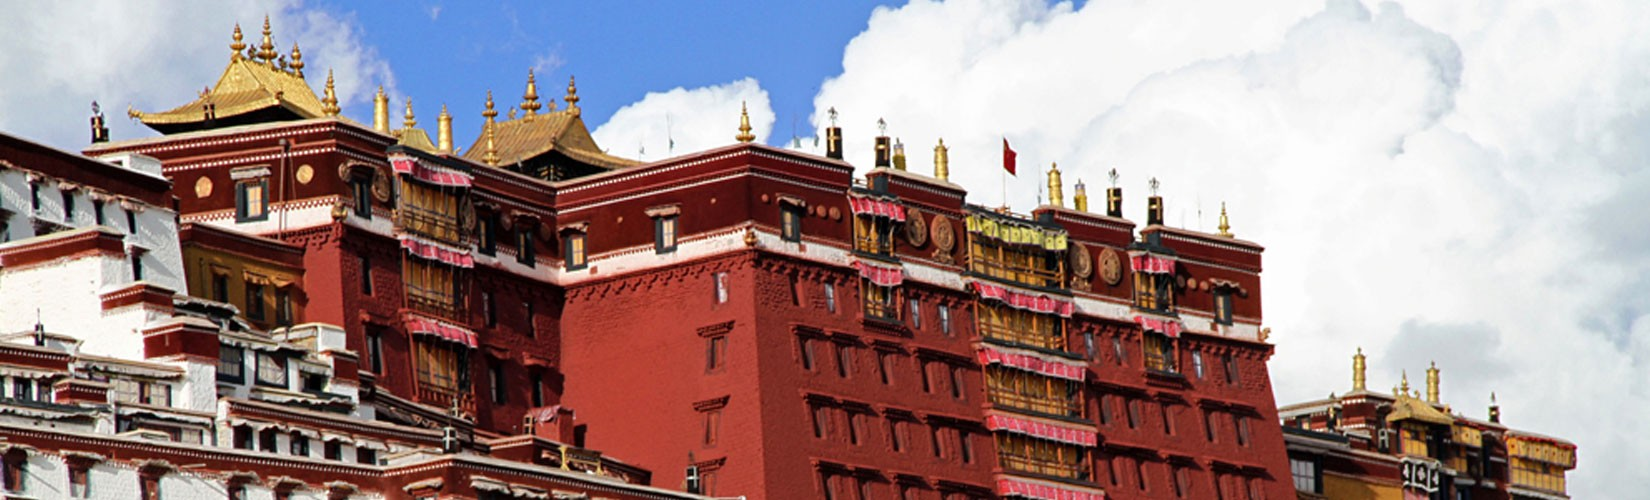 The Potala Palace in Lhasa, Tibet Autonomous Region